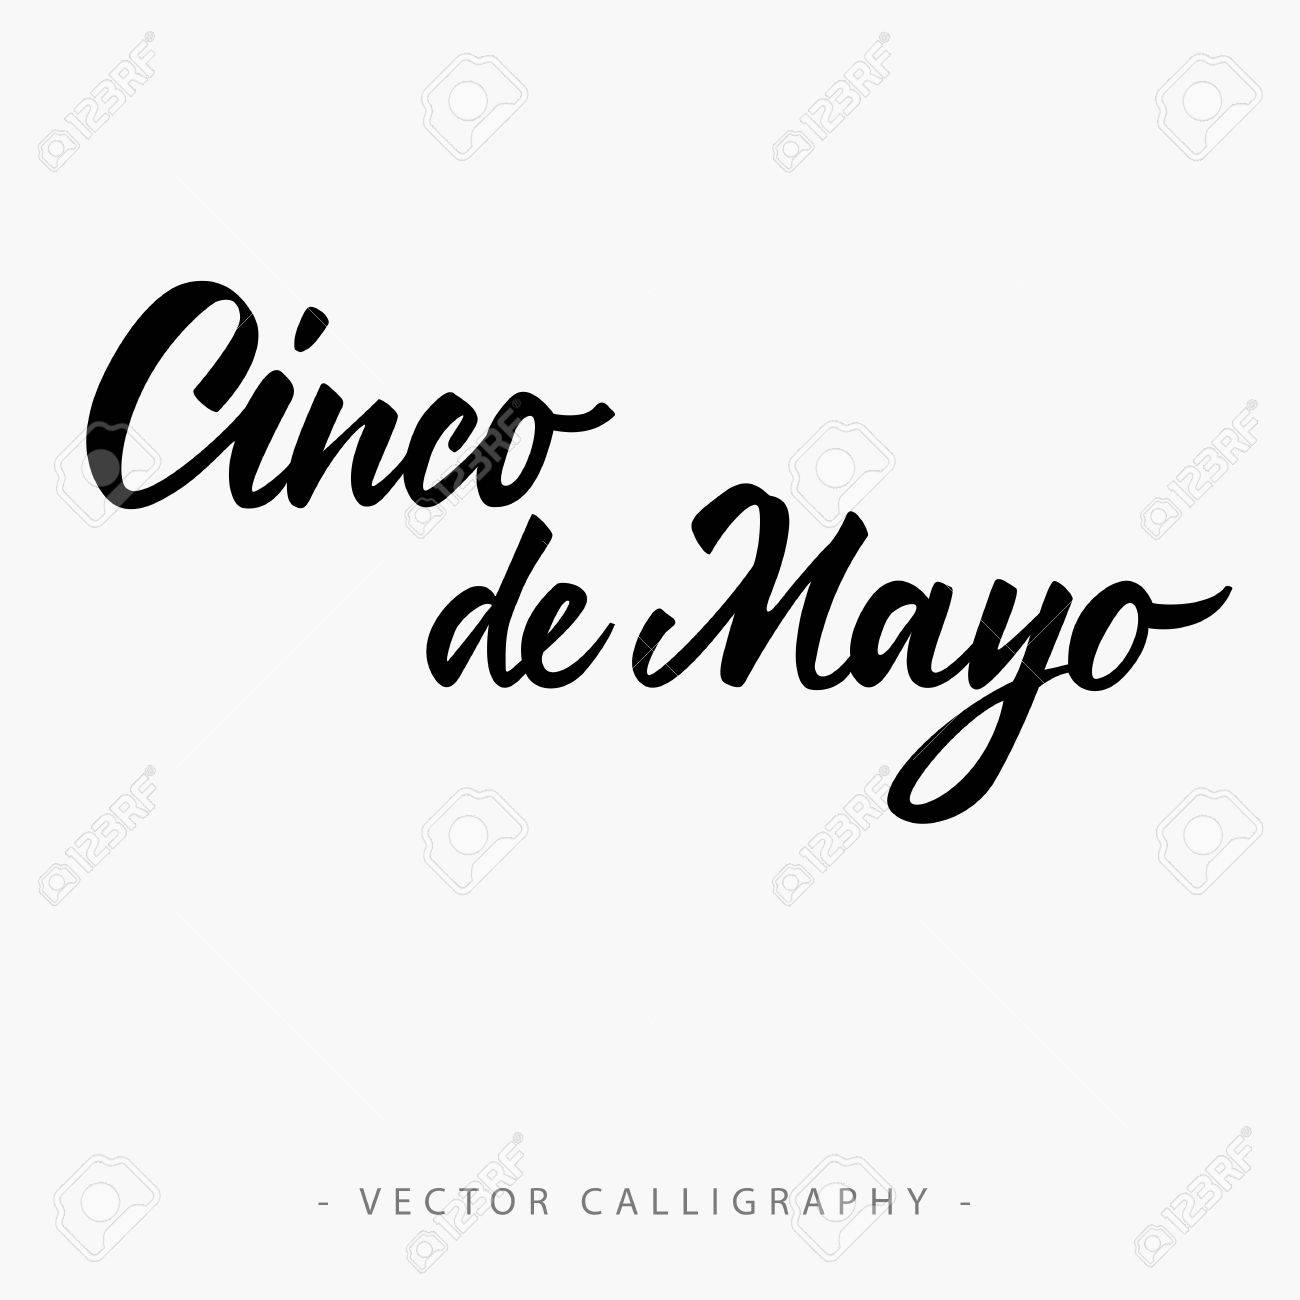 Black cinco de mayo inscription isolated on white background.